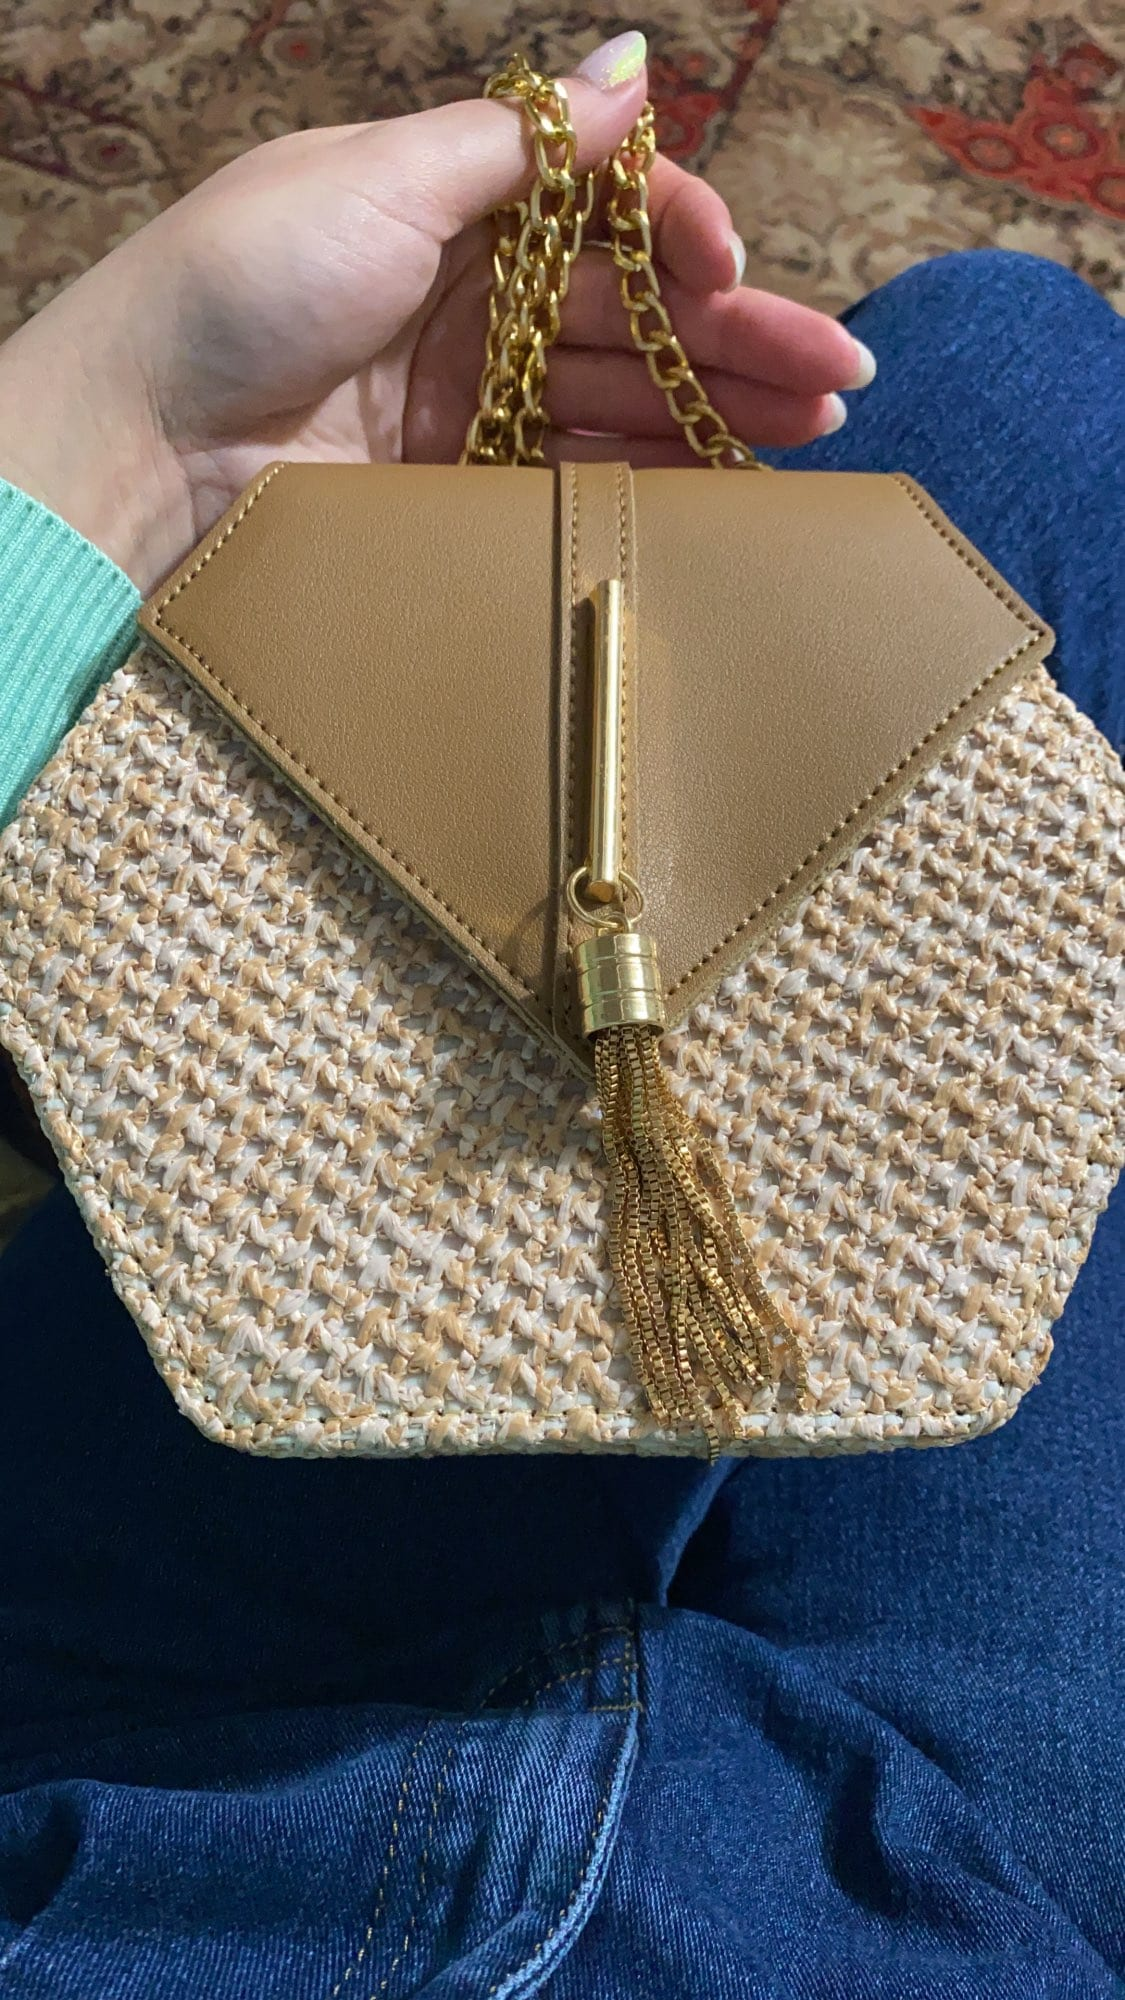 How long straw woven bag large suggest